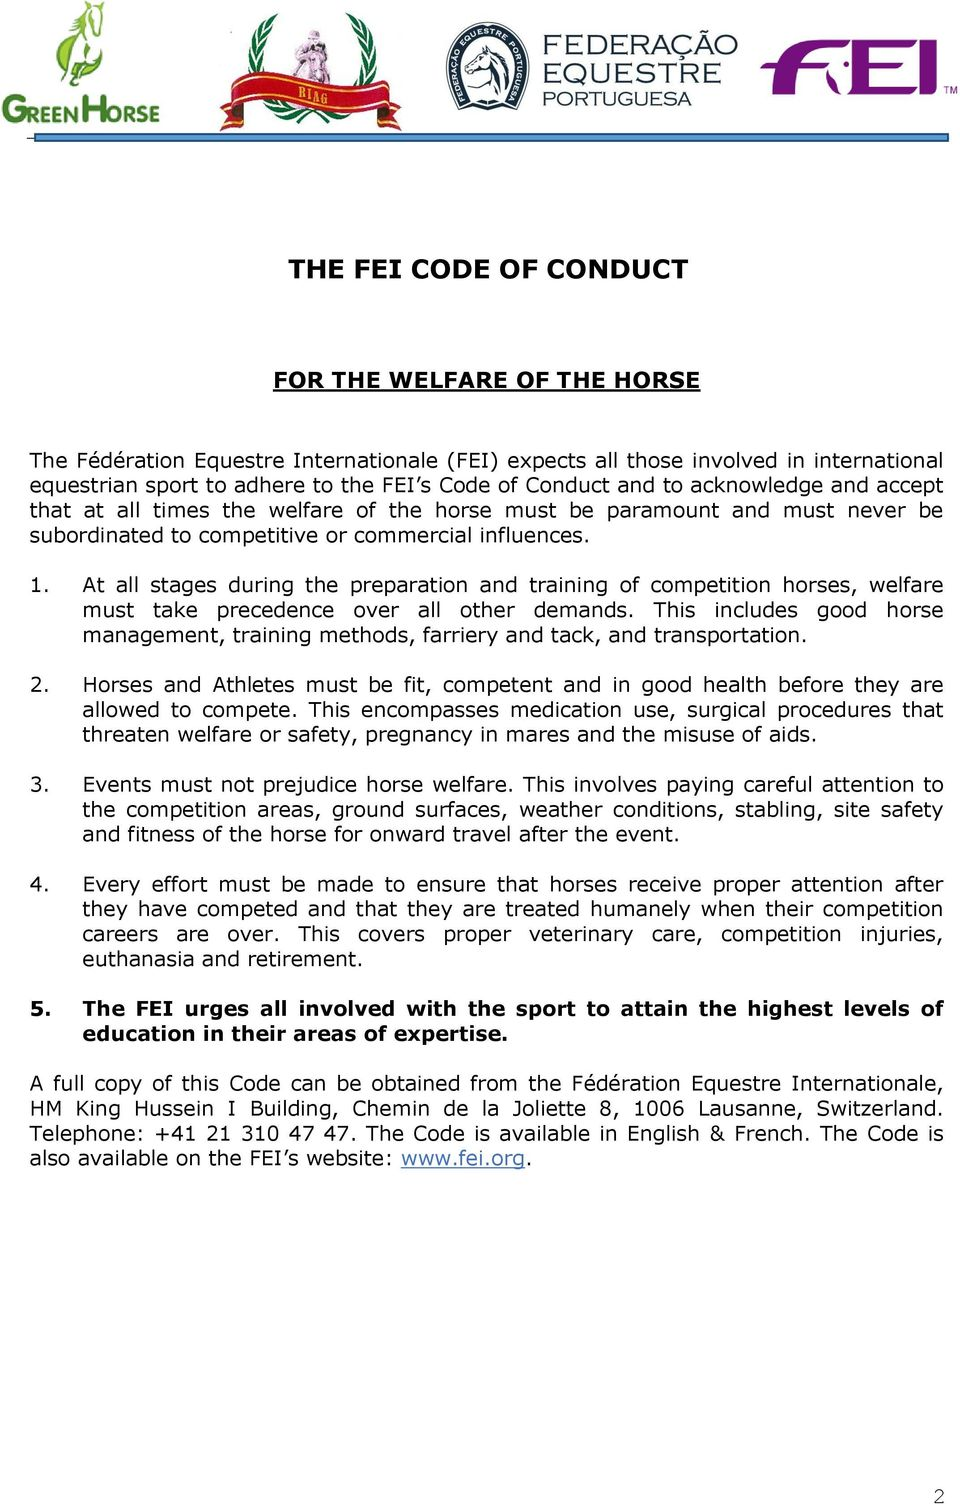 At all stages during the preparation and training of competition horses, welfare must take precedence over all other demands.